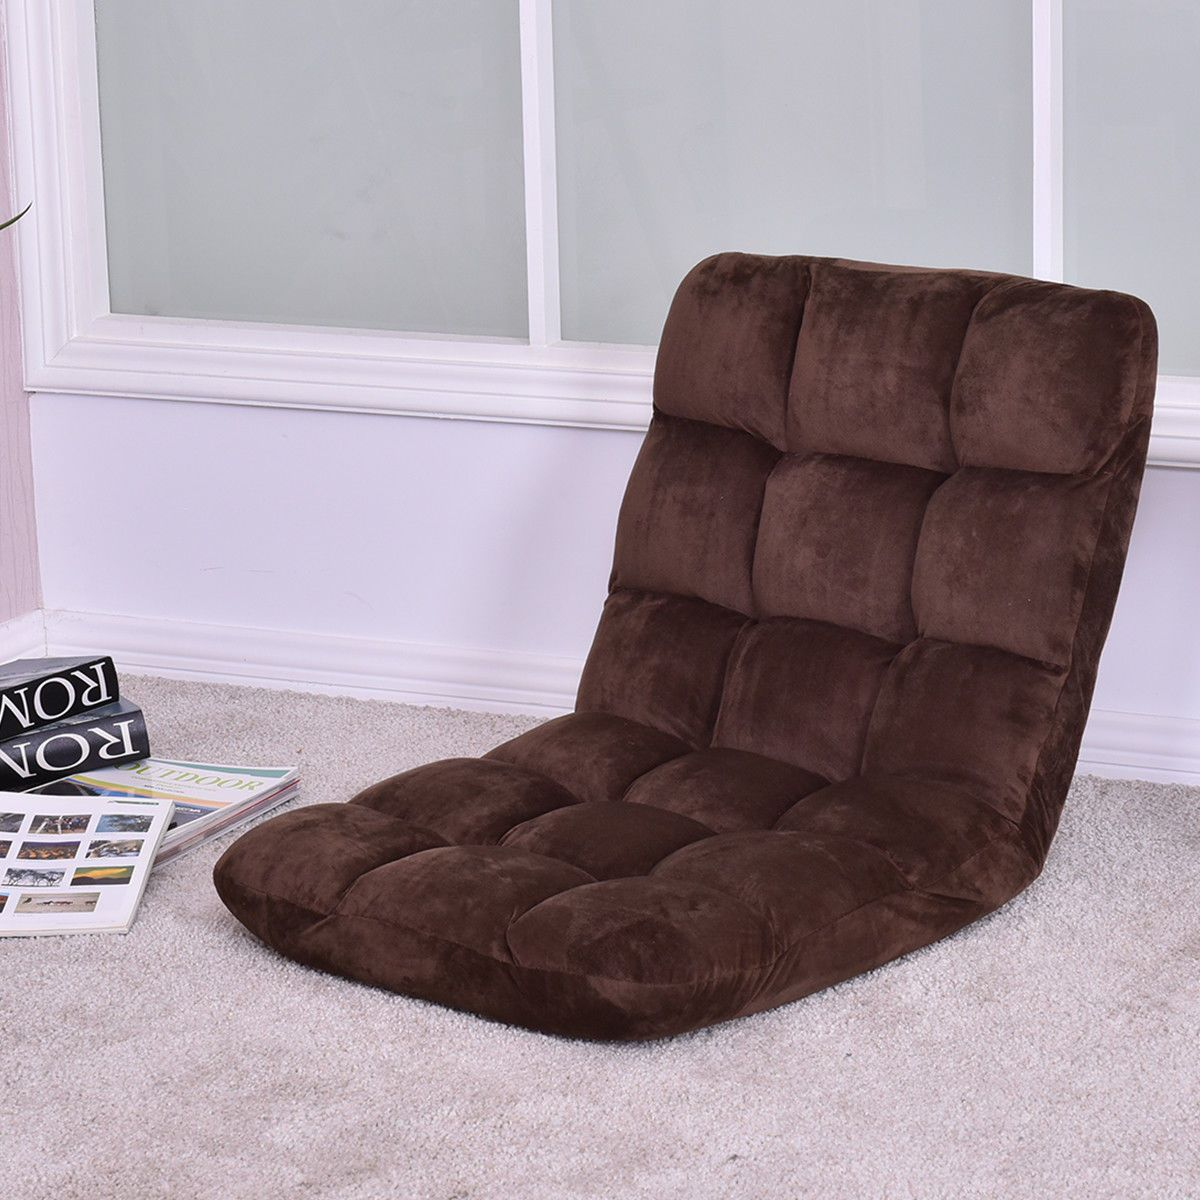 Folding 5 Positon Adjustable Recliner Cushioned Floor